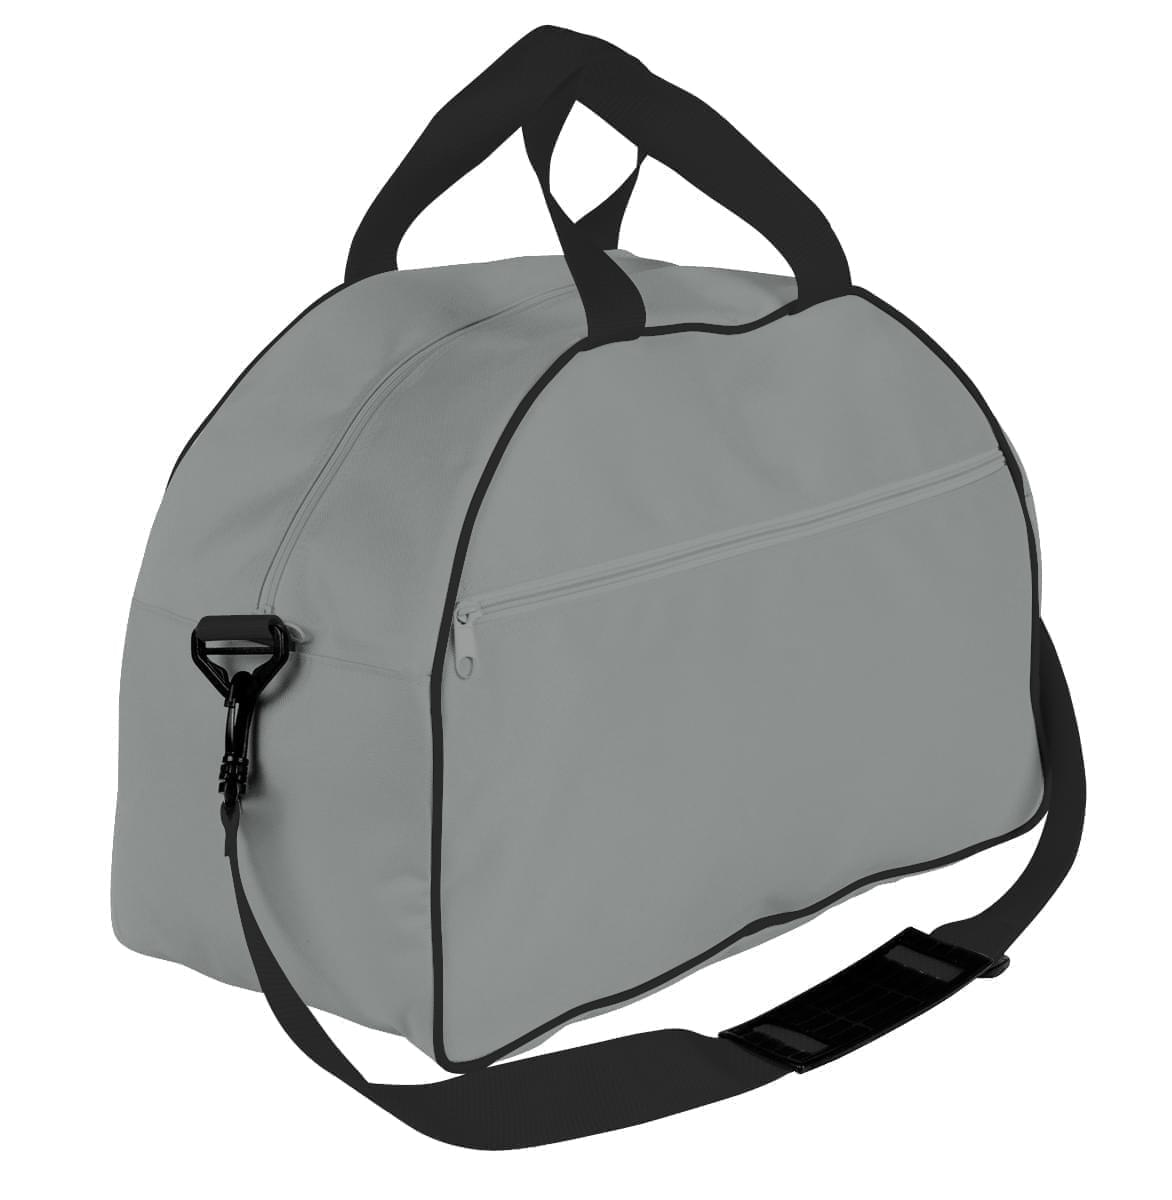 USA Made Nylon Poly Weekender Duffel Bags, Grey-Black, 6PKV32JA1R